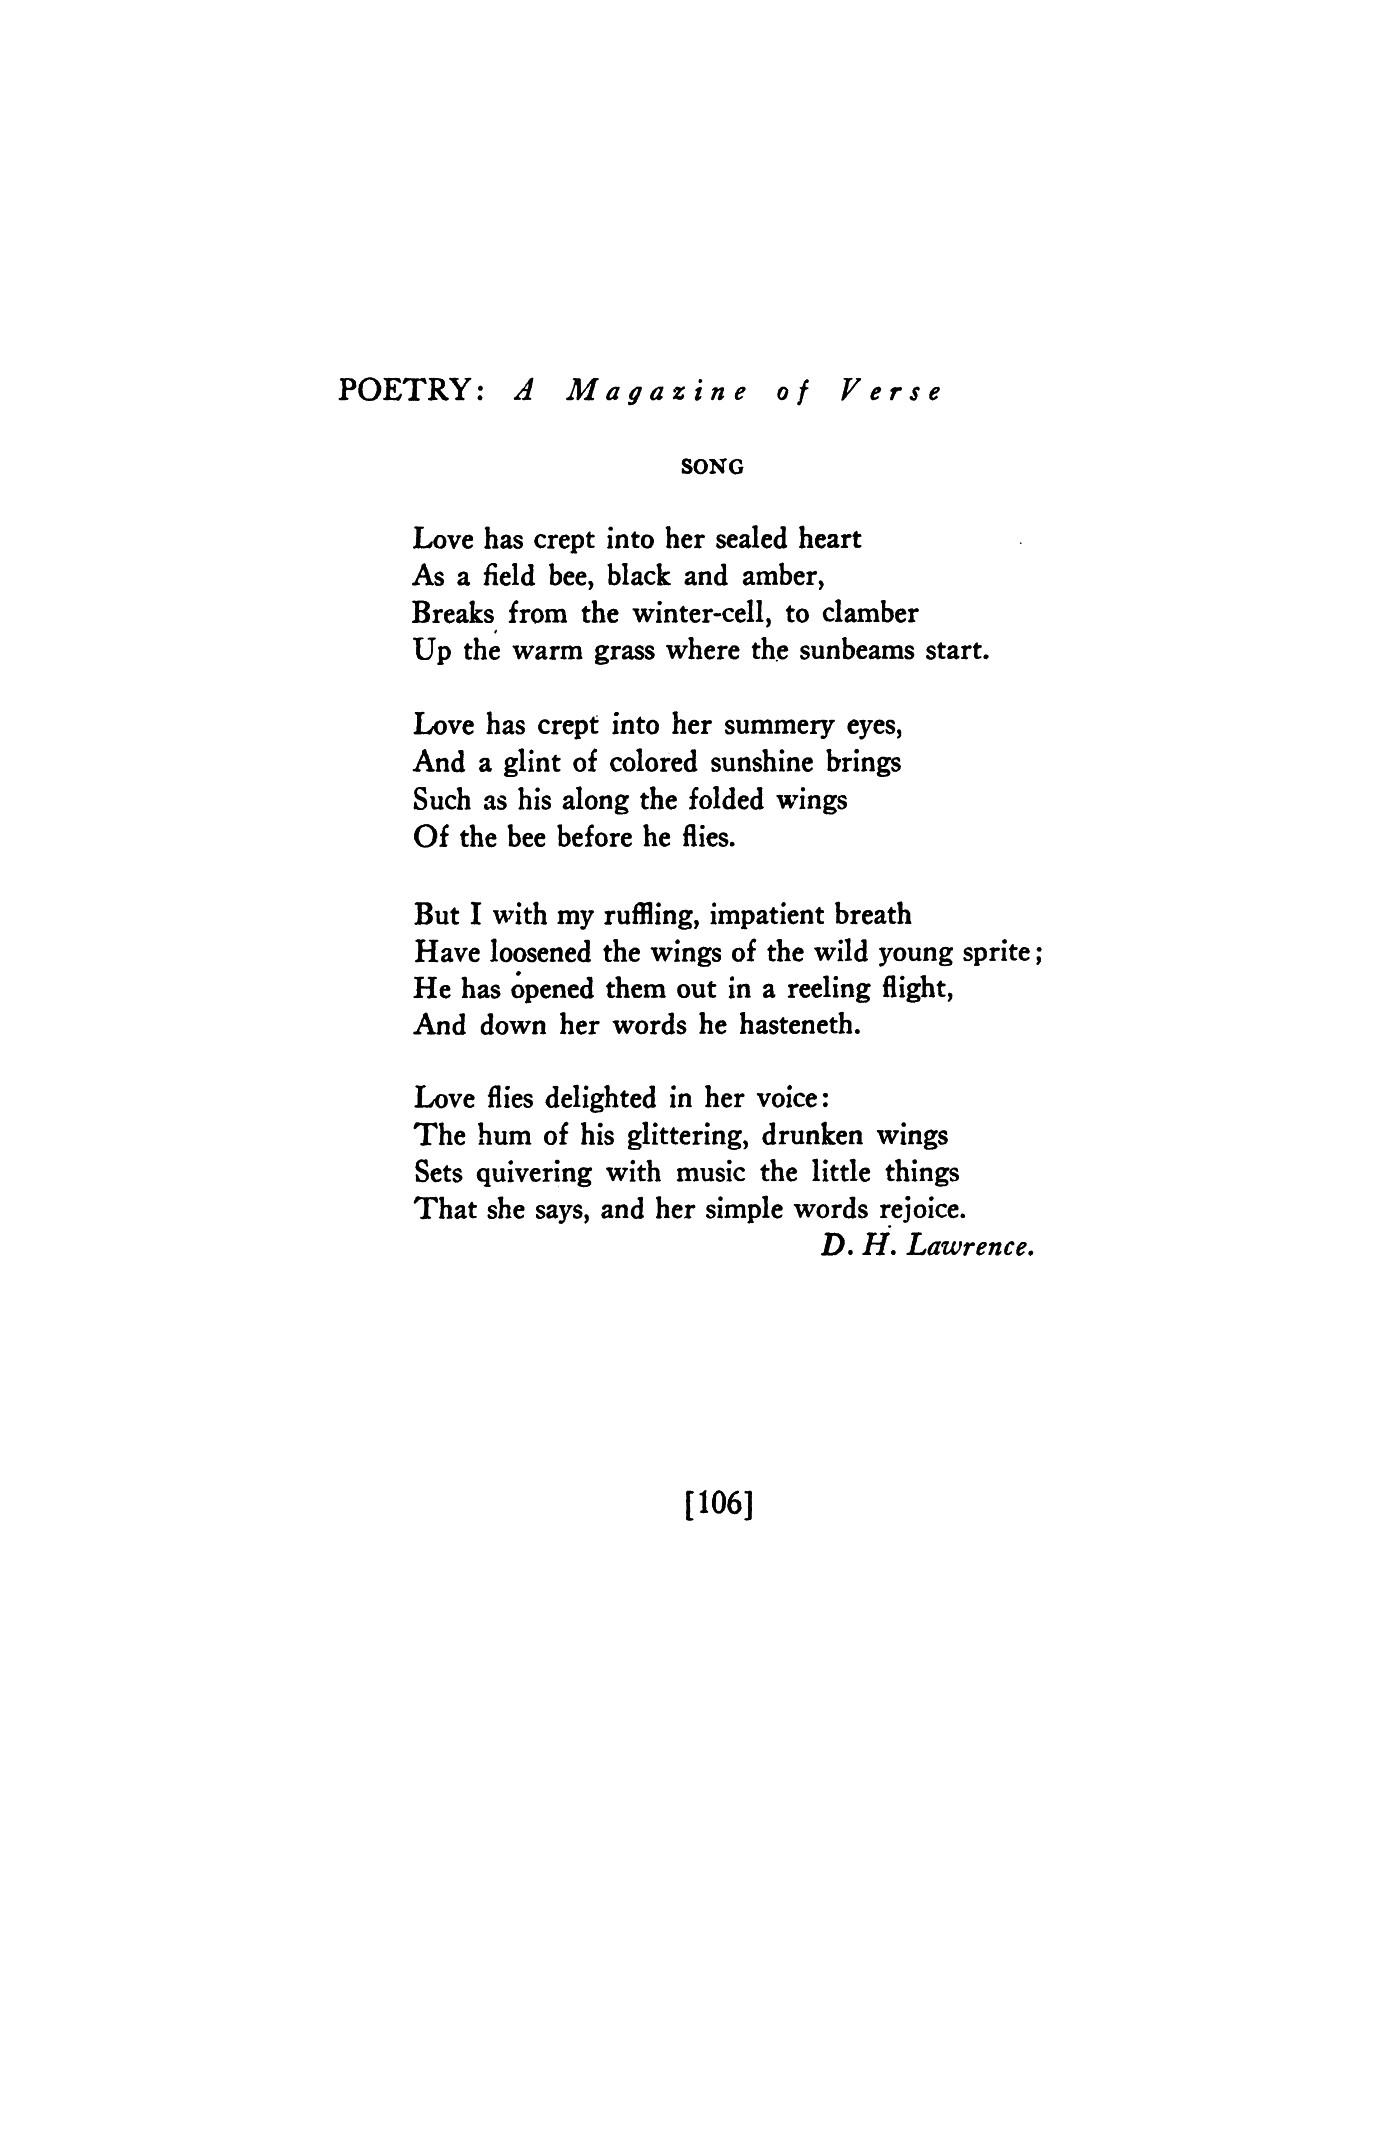 dh lawrence poems wild thing